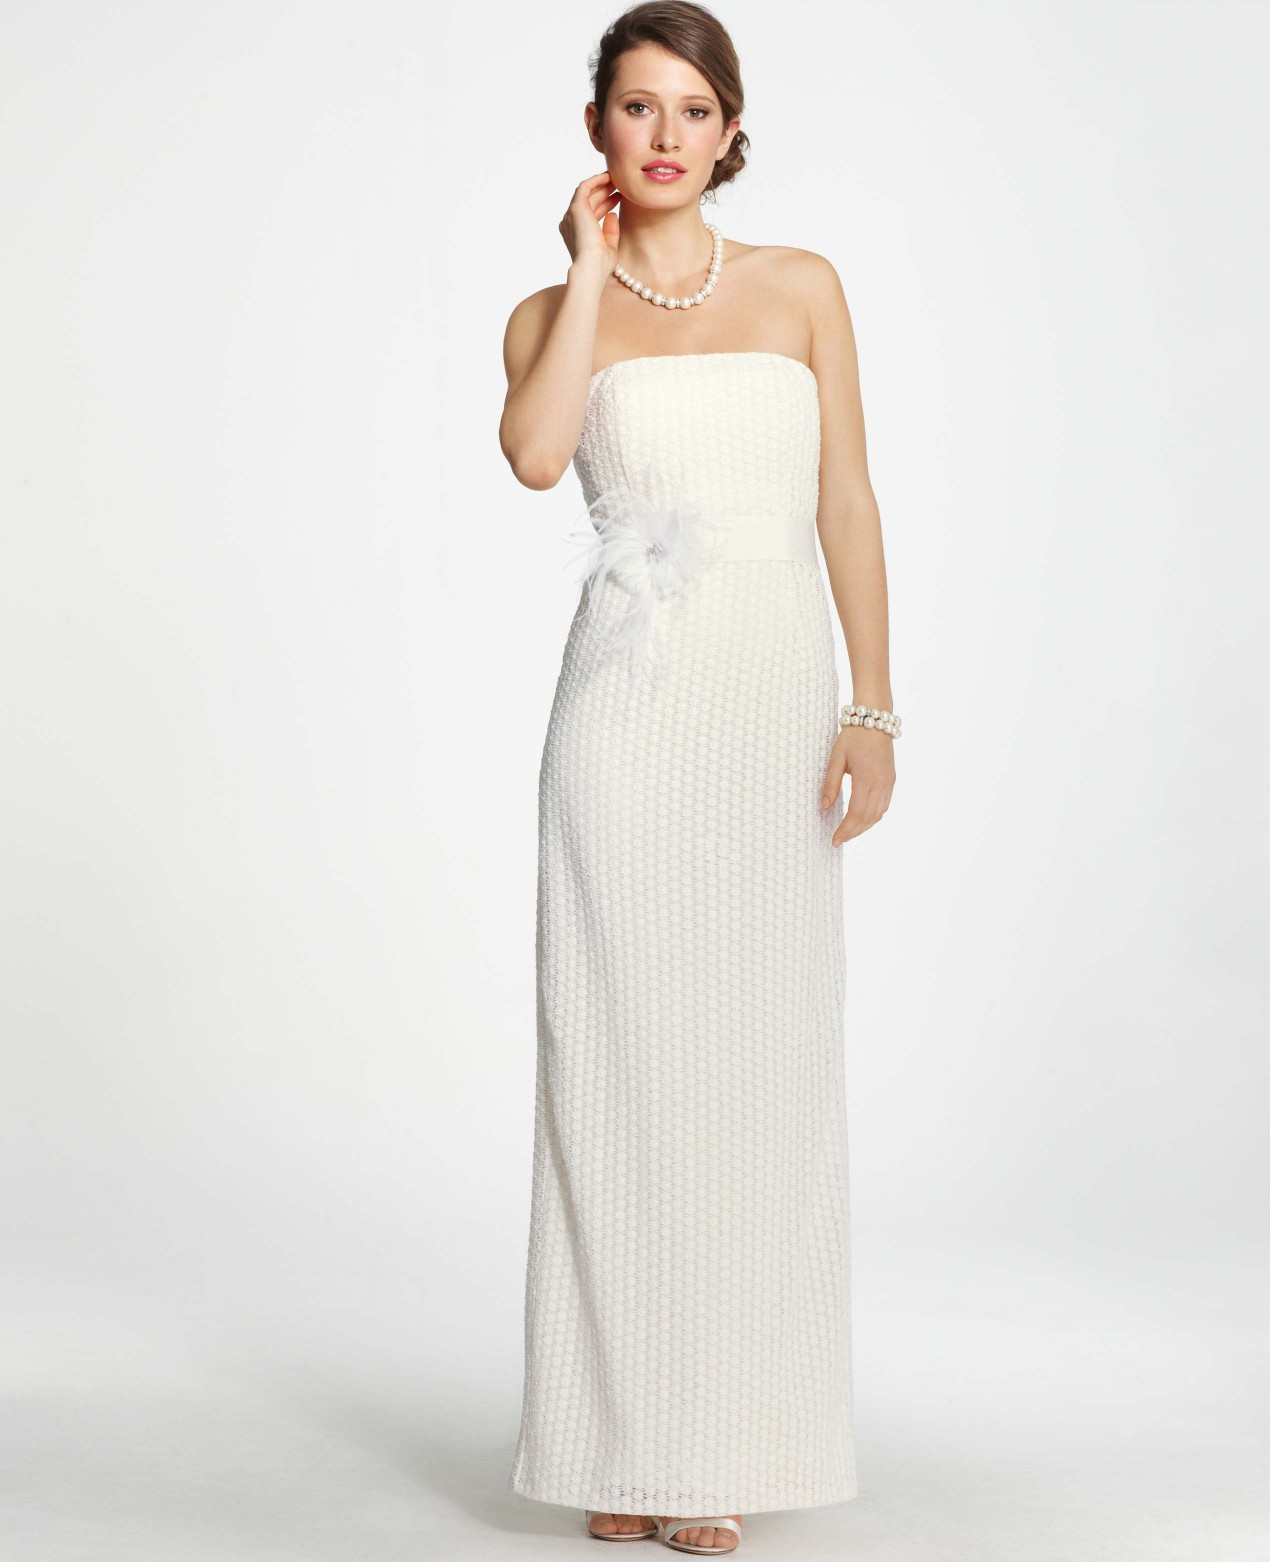 Ann taylor petite lace column wedding dress in white for Petite designers